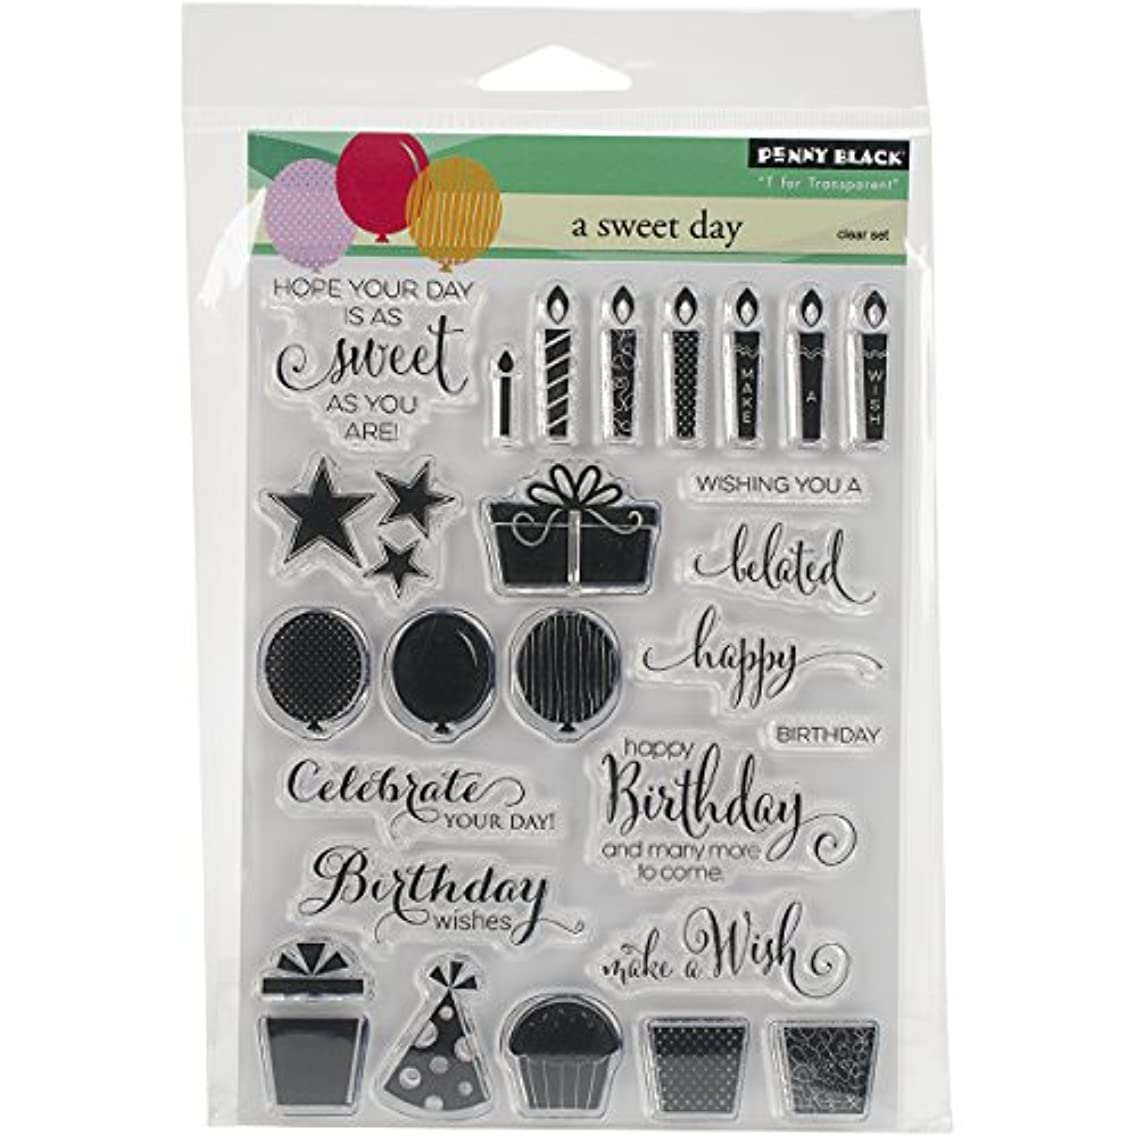 Penny Black PB30280 A Sweet Day Clear Stamps Sheet, 5 x 6.5